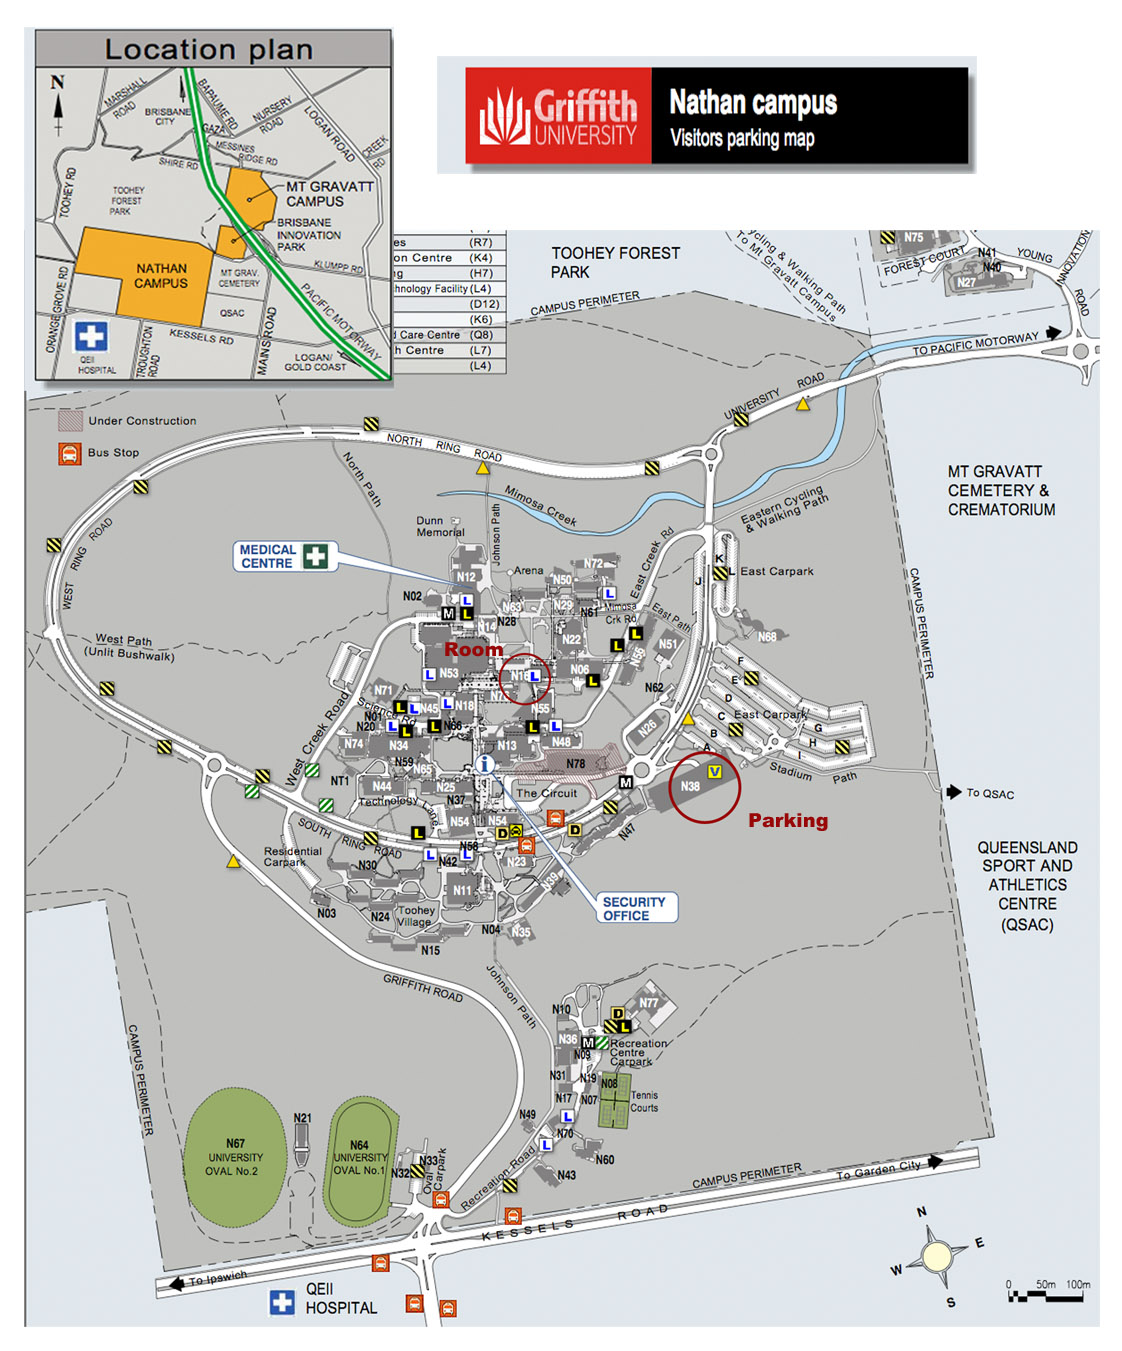 Griffith University Map Griffith University Map | compressportnederland Griffith University Map